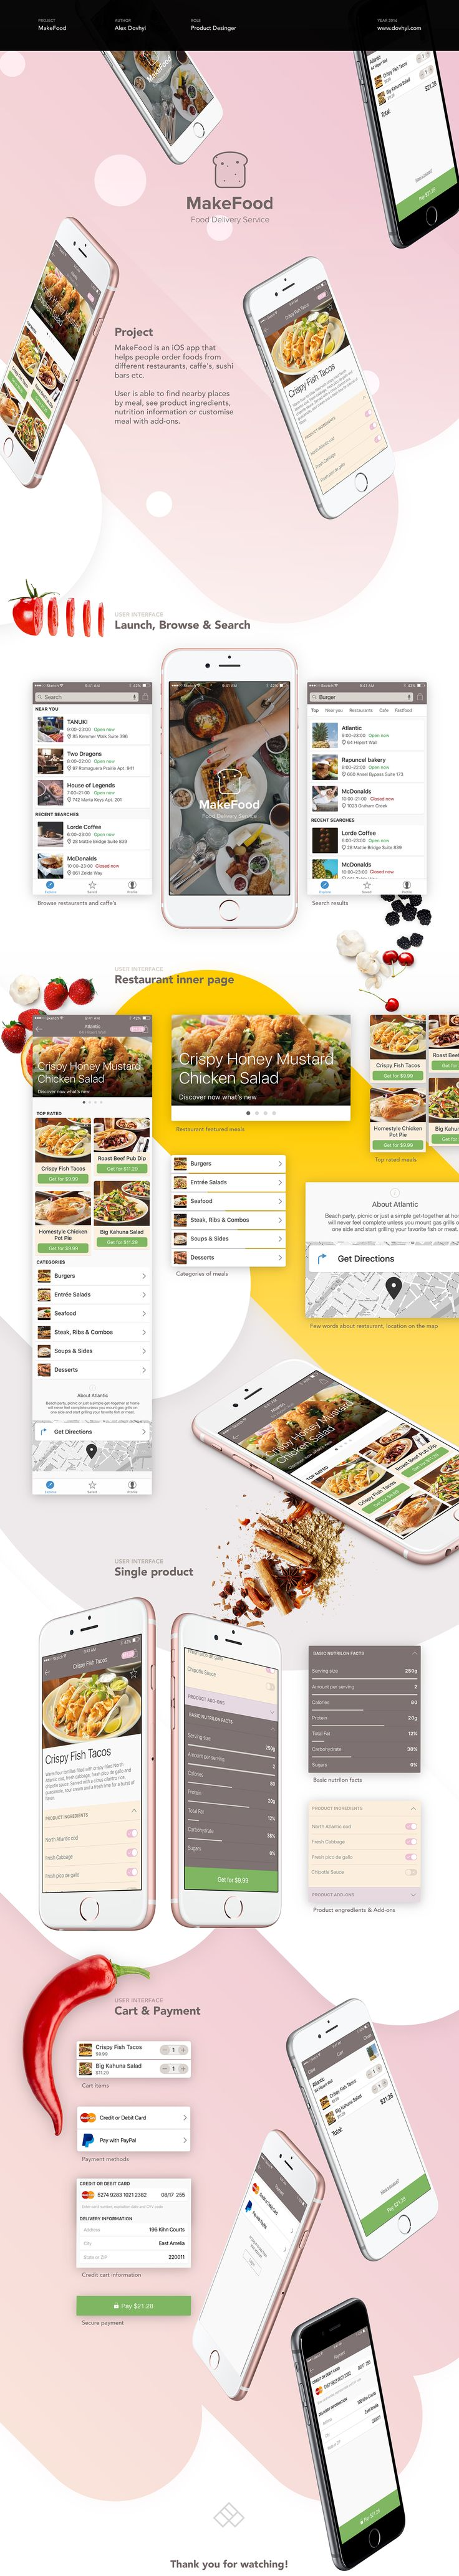 MakeFood – Food Delivery Service on Behance